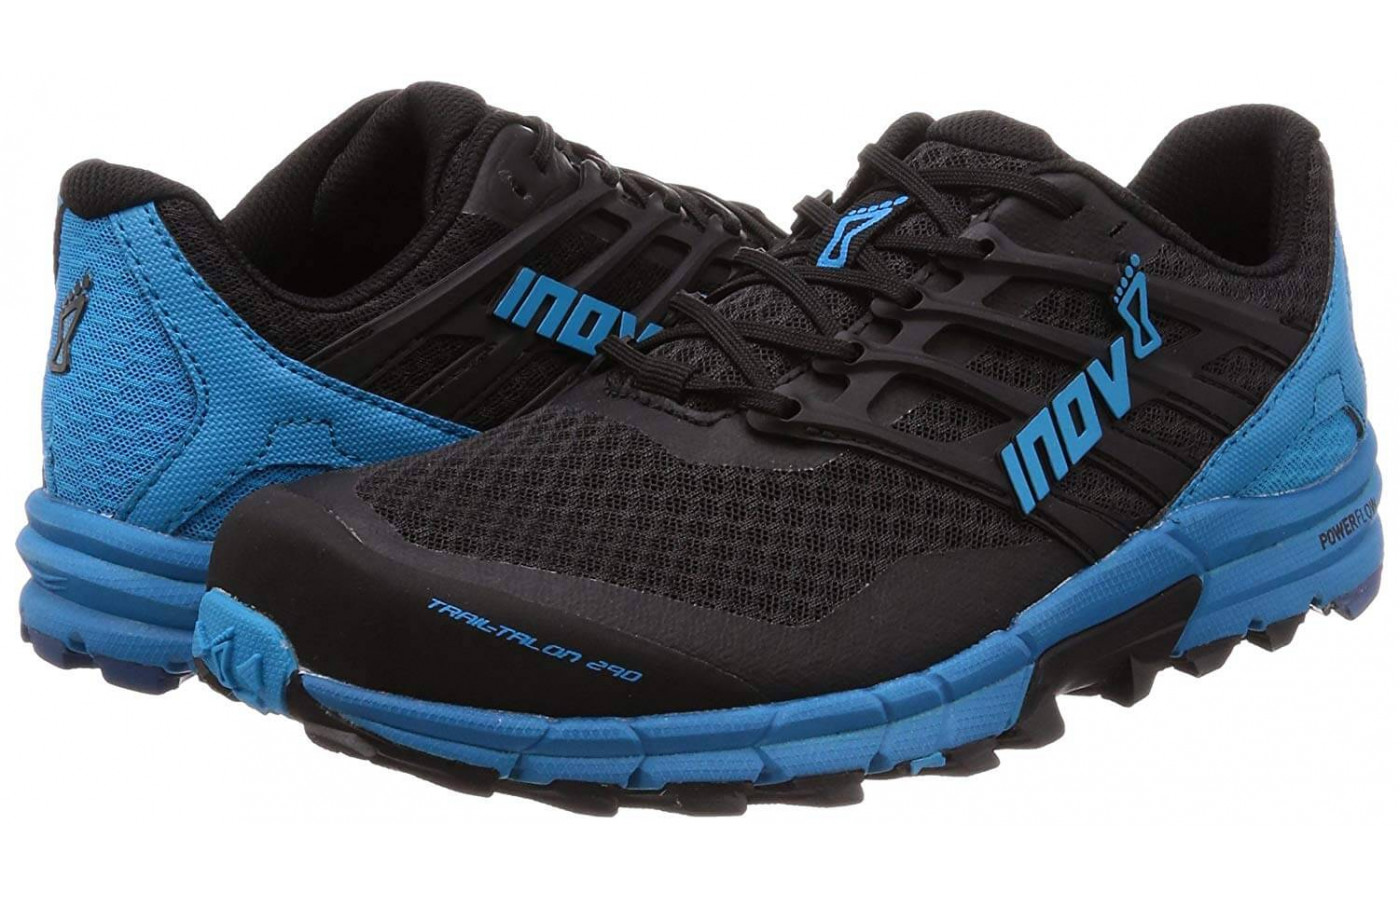 Inov-8 Trailtalon 290 left right